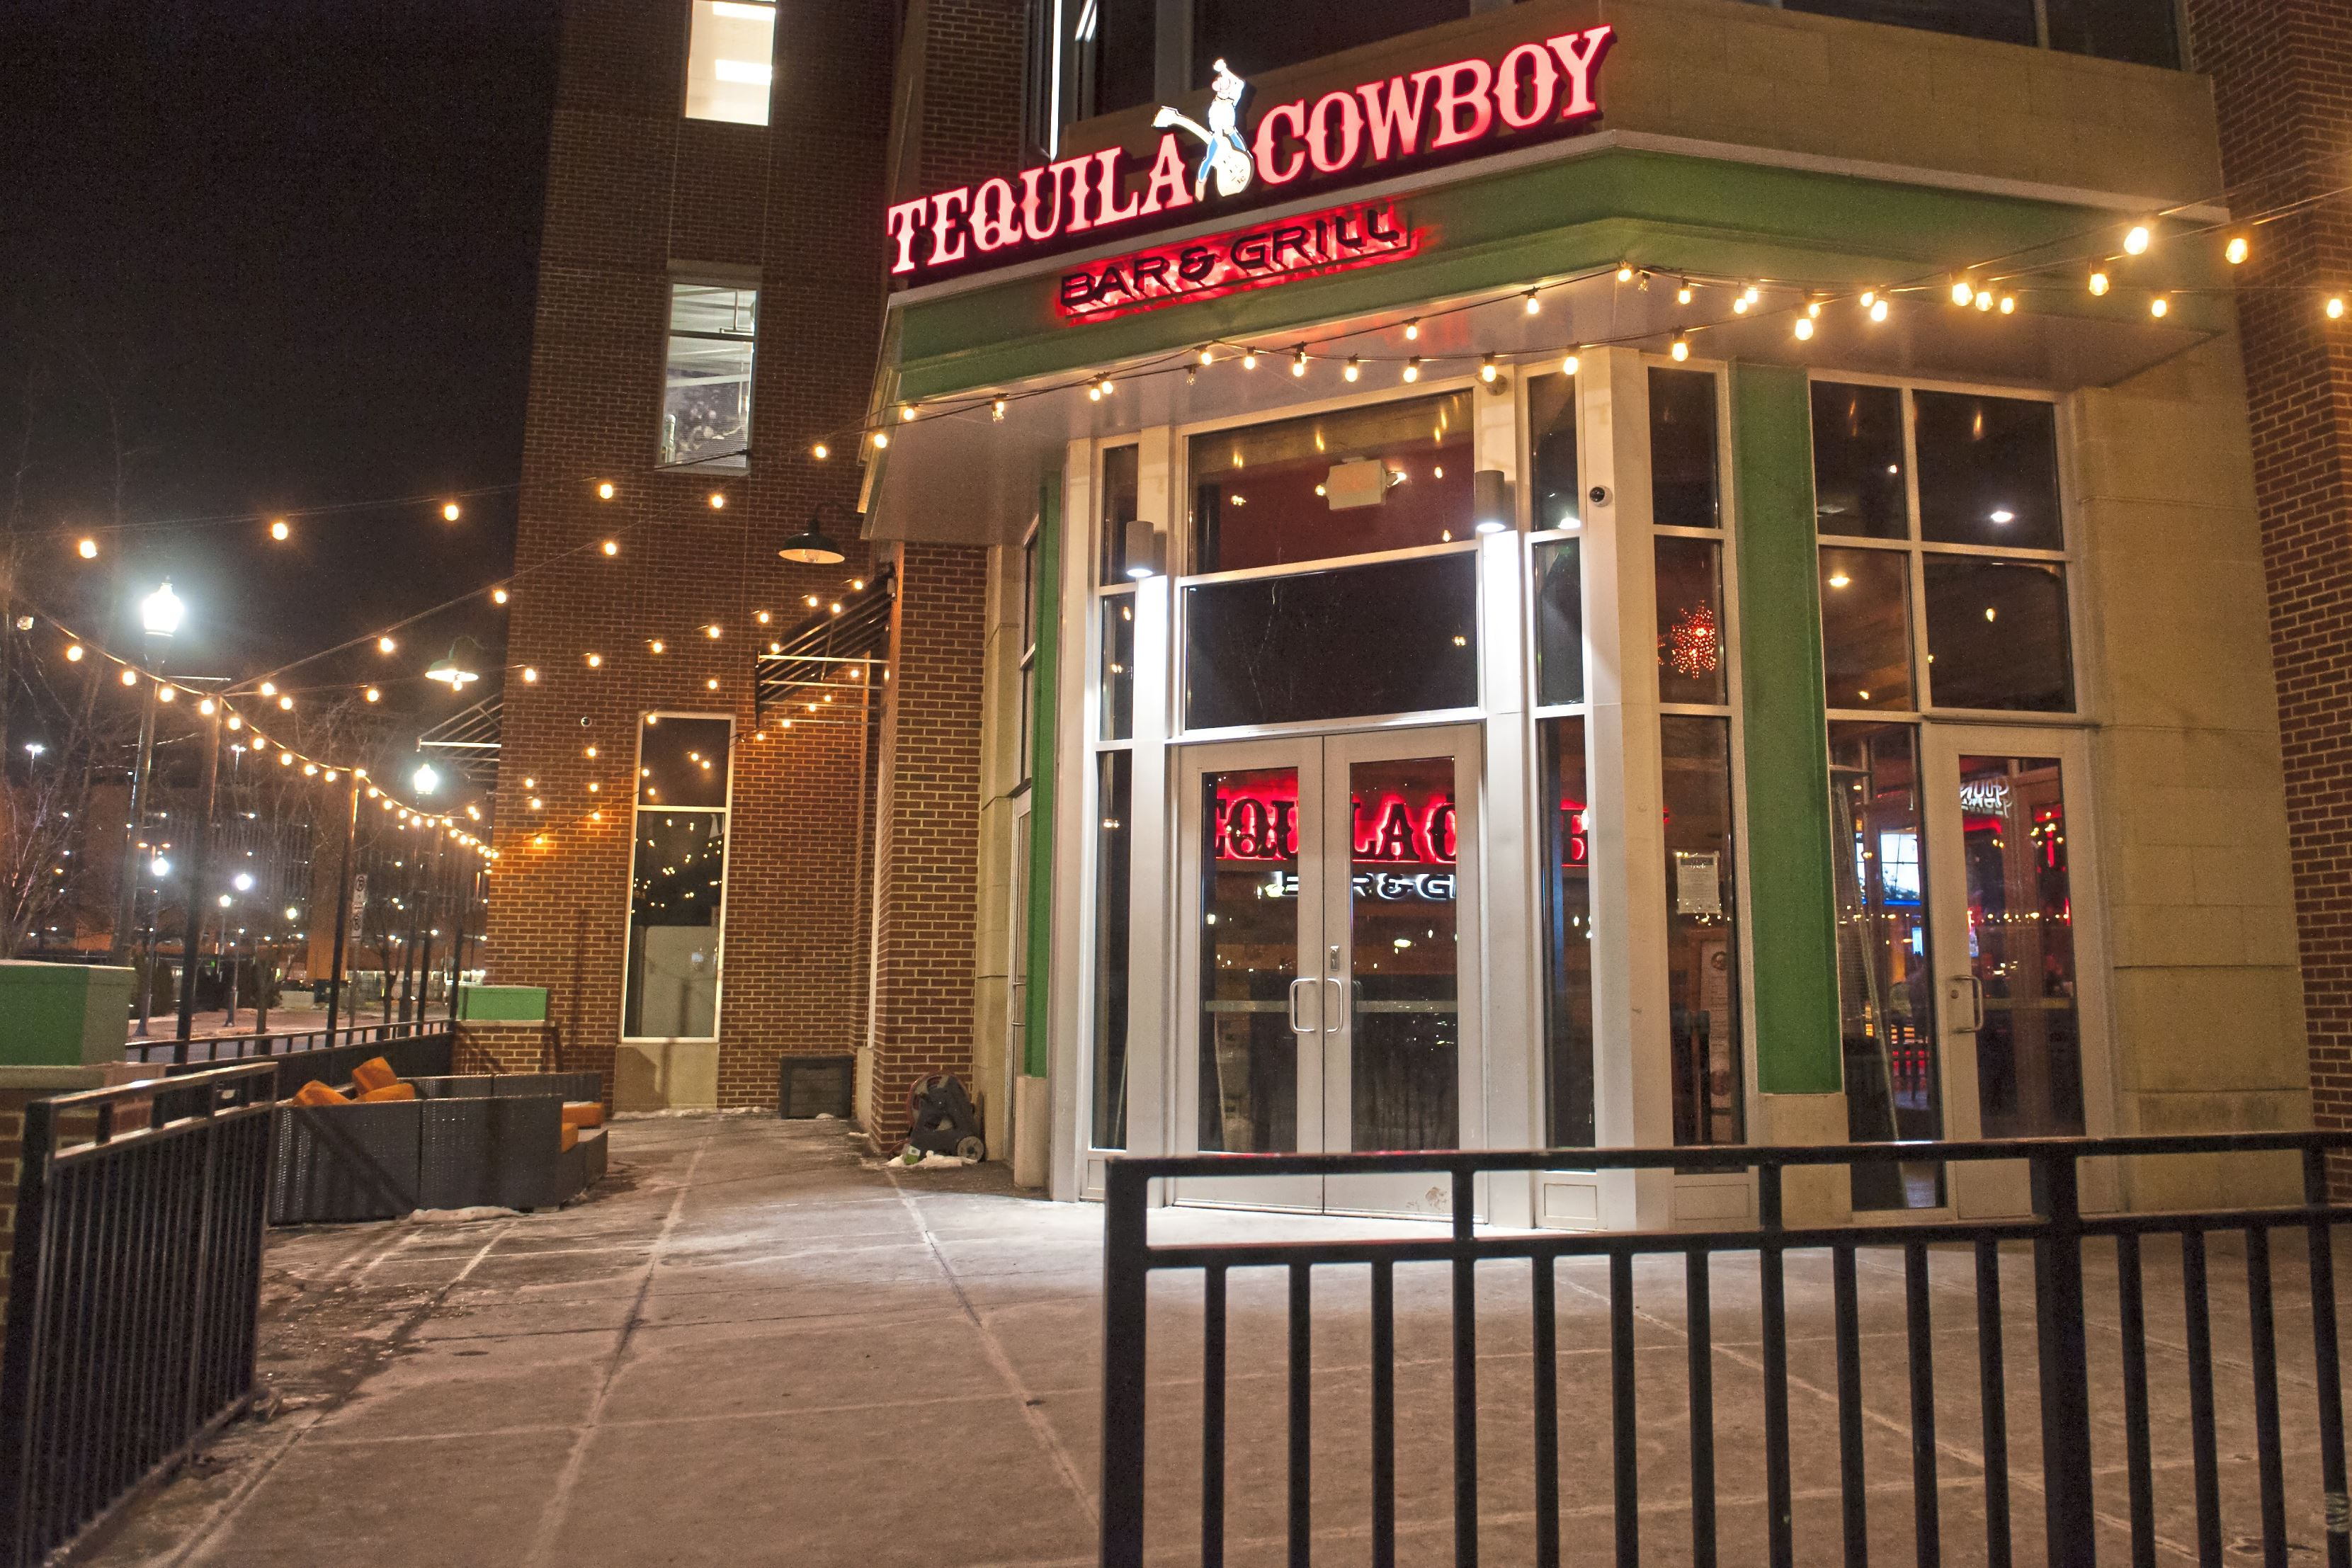 """20180107smsTequila03-2 Lights shine at the entryway for Tequila Cowboy on Sunday, Jan. 7, 2018 along the North Shore by Heinz Field. On New Year's Eve, Steelers offensive coordinator Todd Haley injured his hip and was escorted out of the bar after his wife Christine Haley was in a """"minor scuffle"""" at the establishment."""